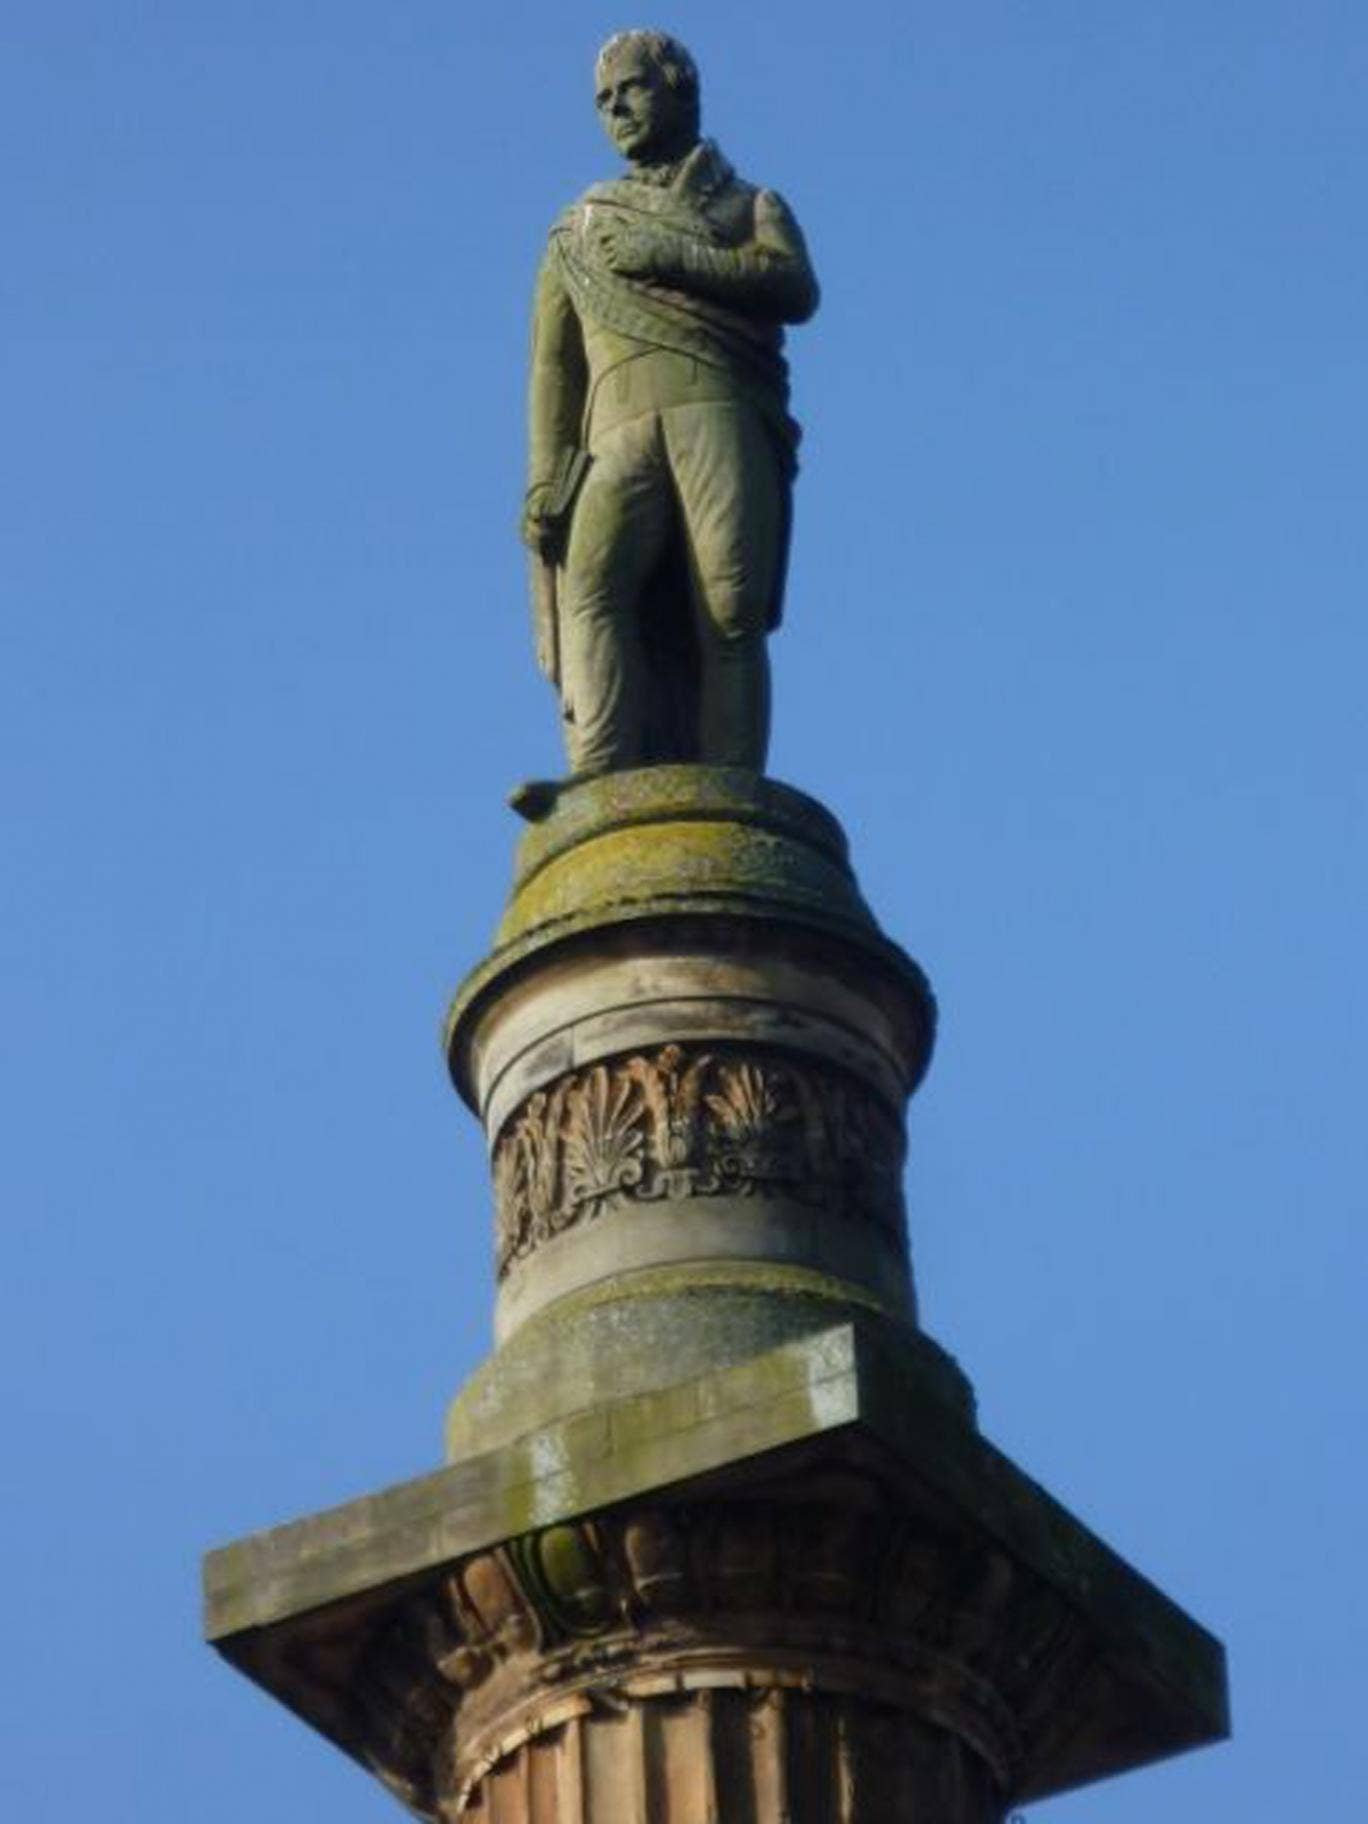 The monument of Walter Scott in Glasgow's George Square